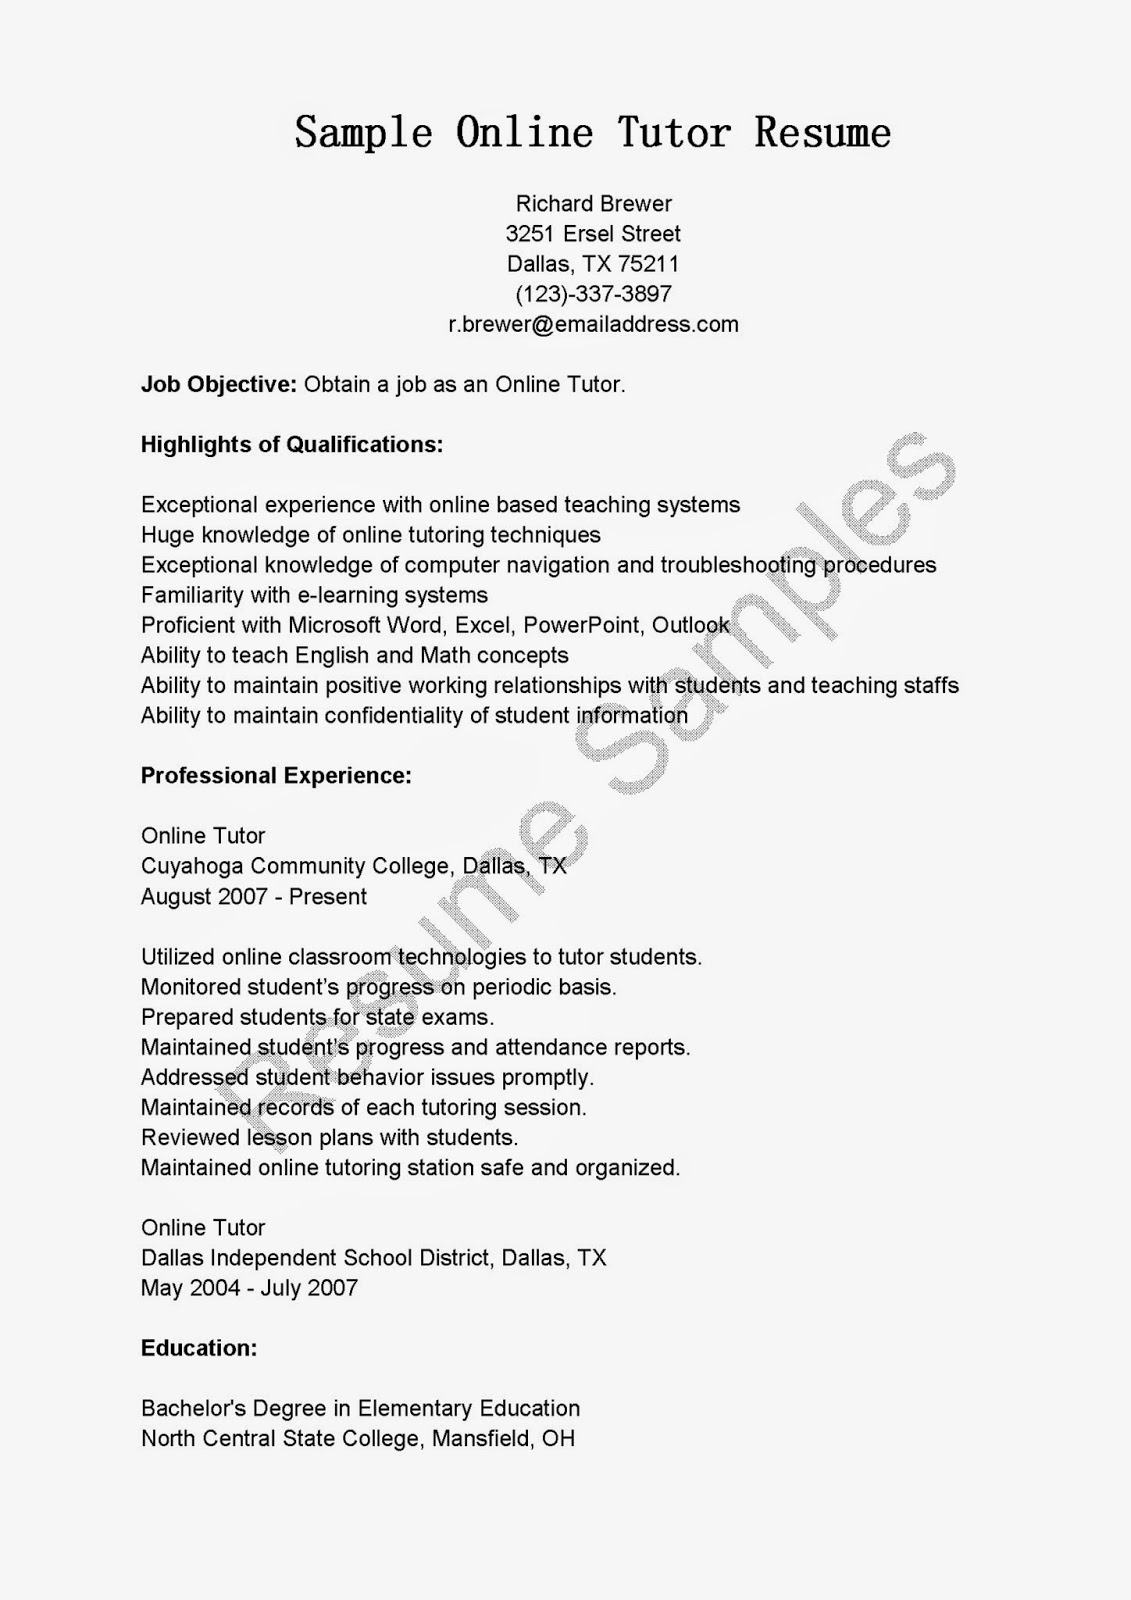 Resume Samples Paraprofessional Tutor Sample 10